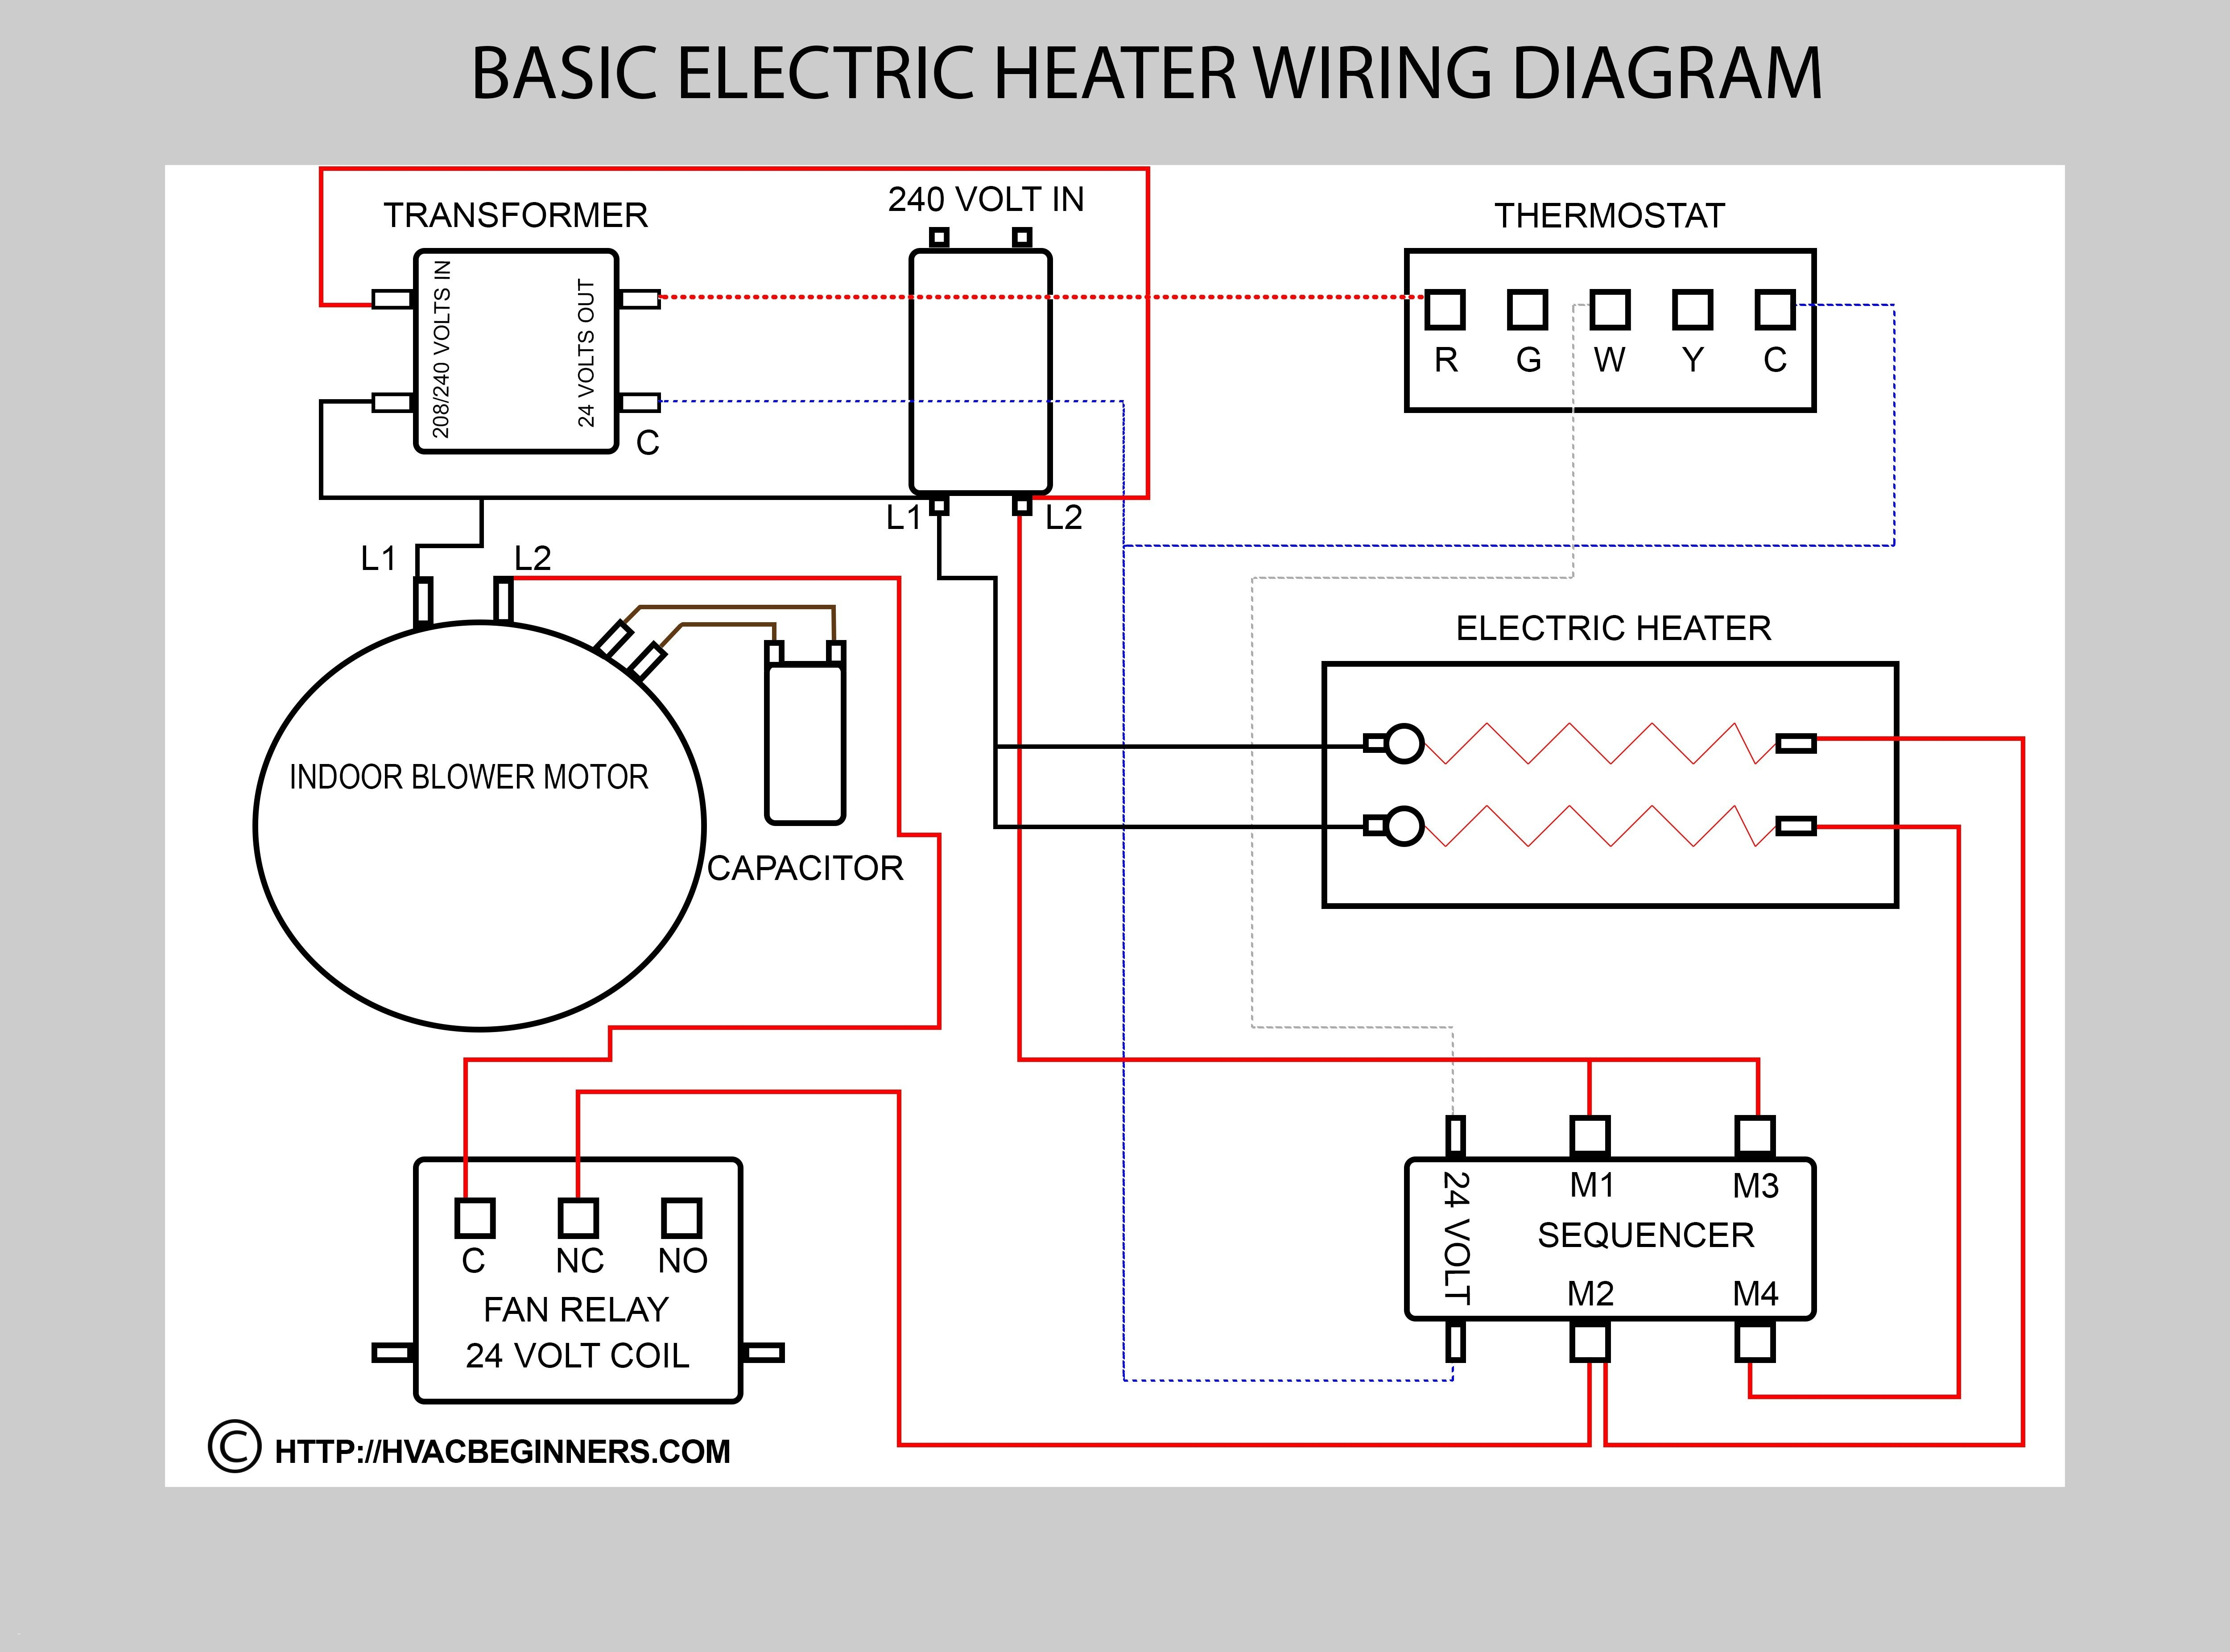 wiring diagram of window type air conditioner 2012 ford focus car conditioning system